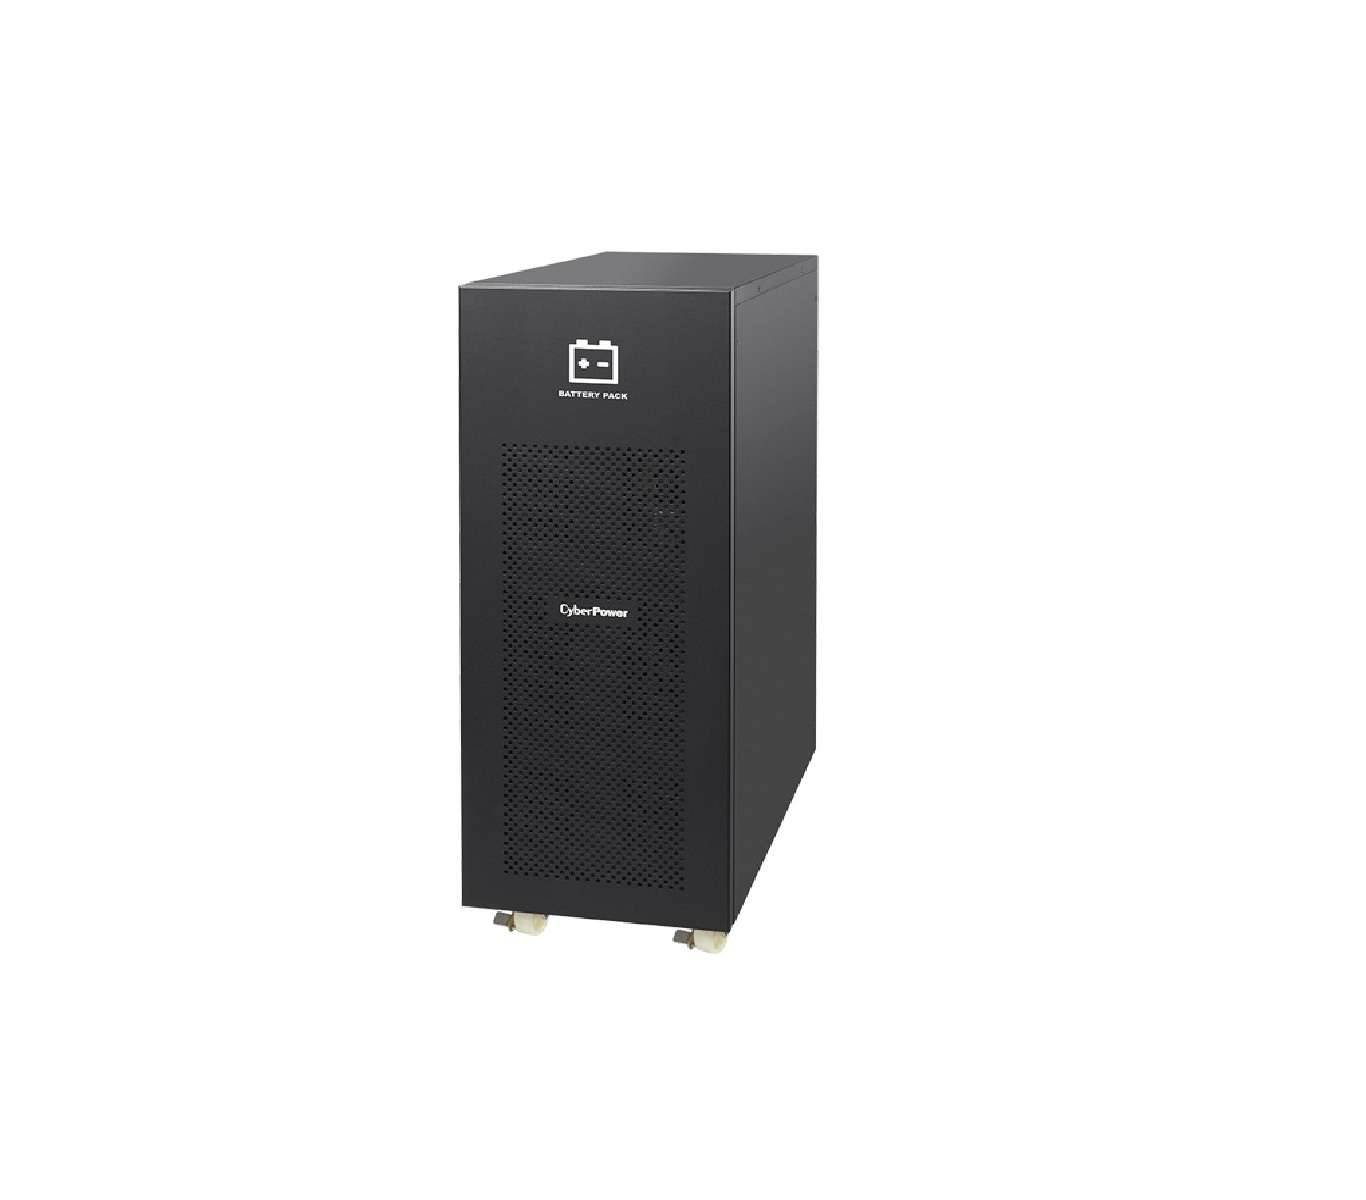 Bộ nguồn ắc quy CyberPower BPSE240V47A